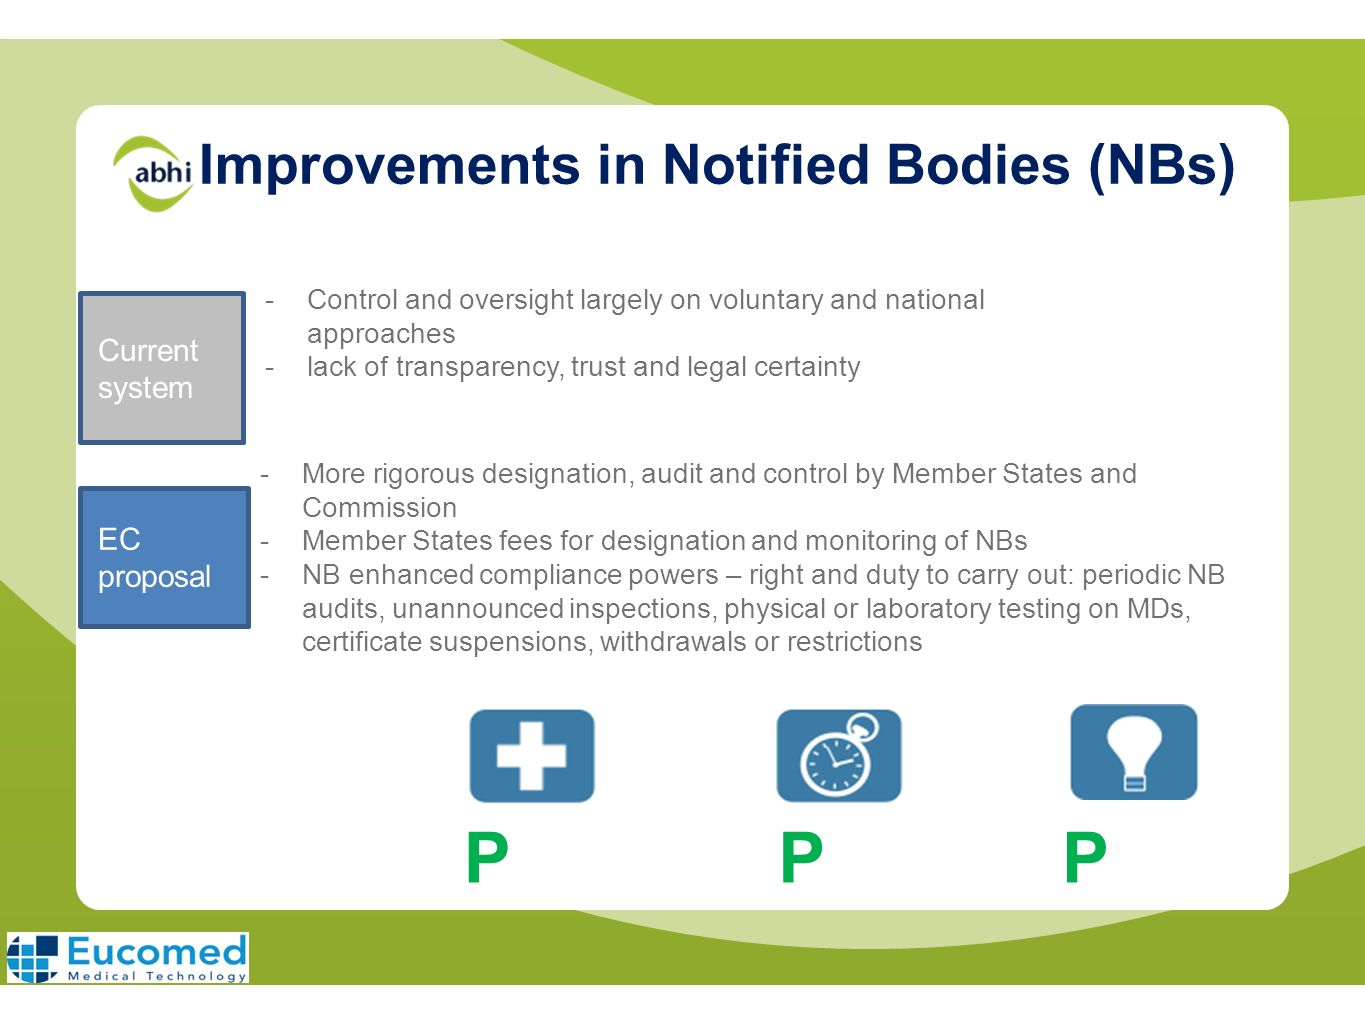 Improvements in Notified Bodies (NBs)